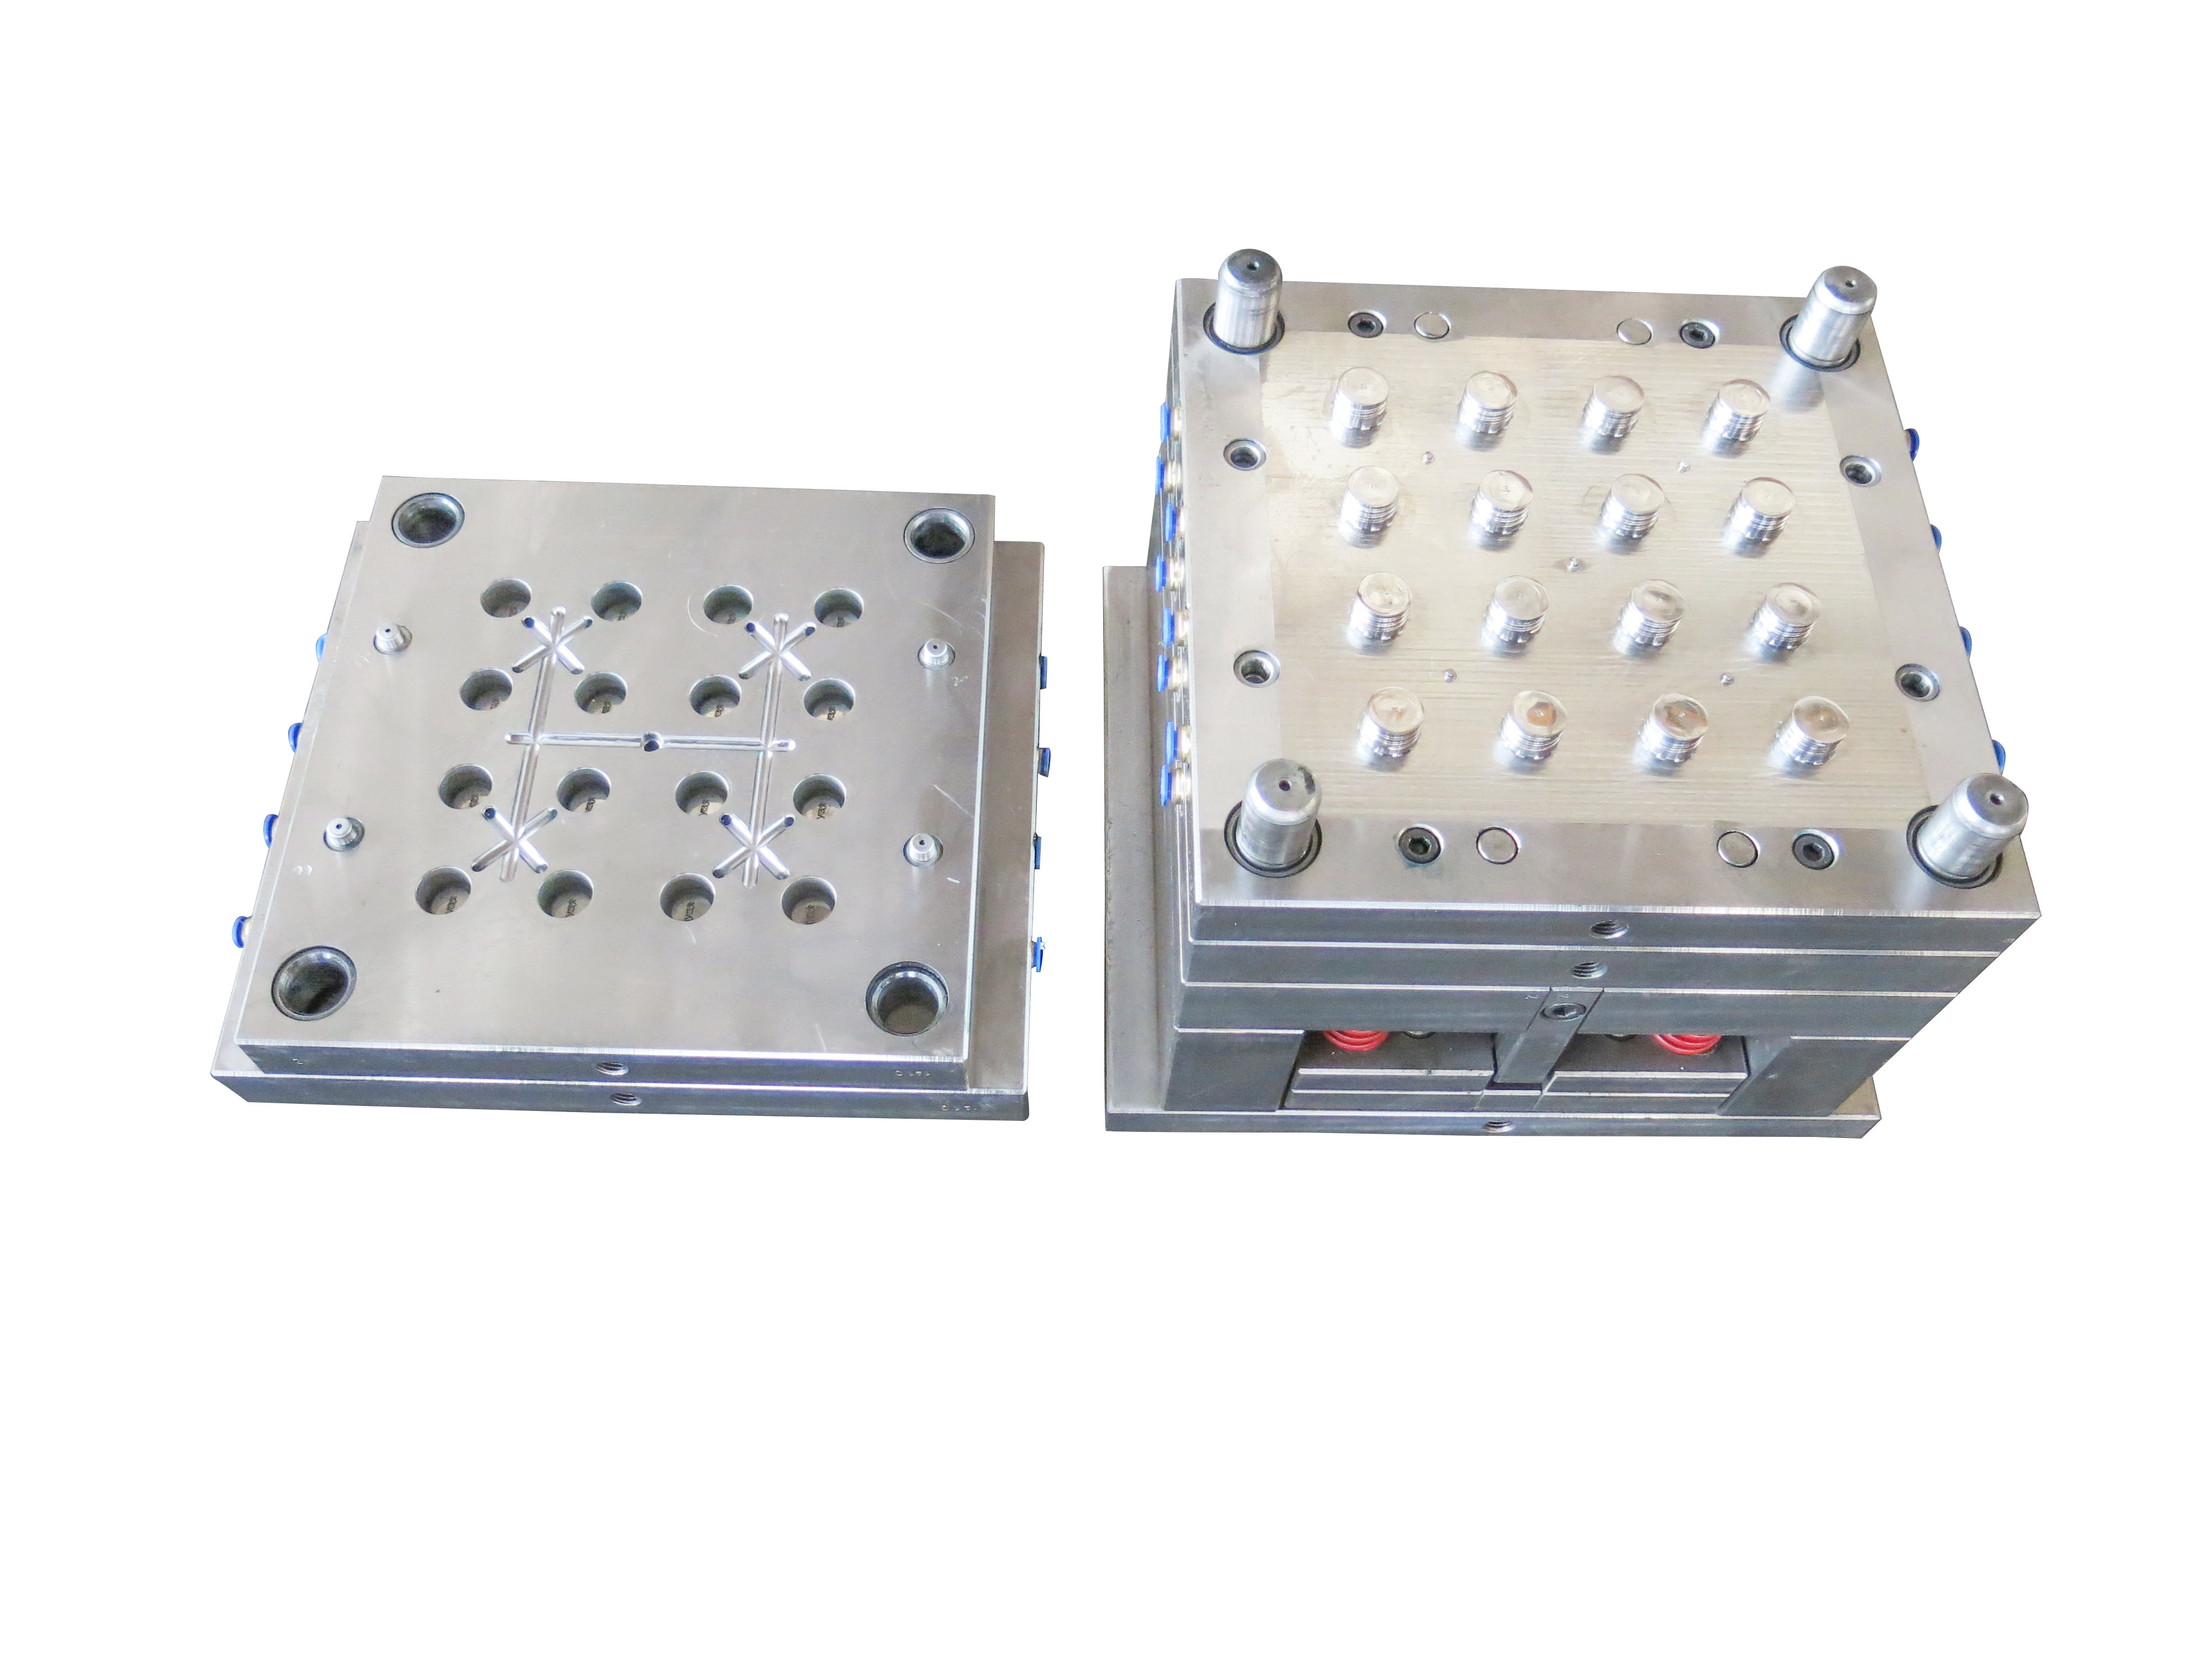 What factors will affect the quality of aluminum die-casting molds?